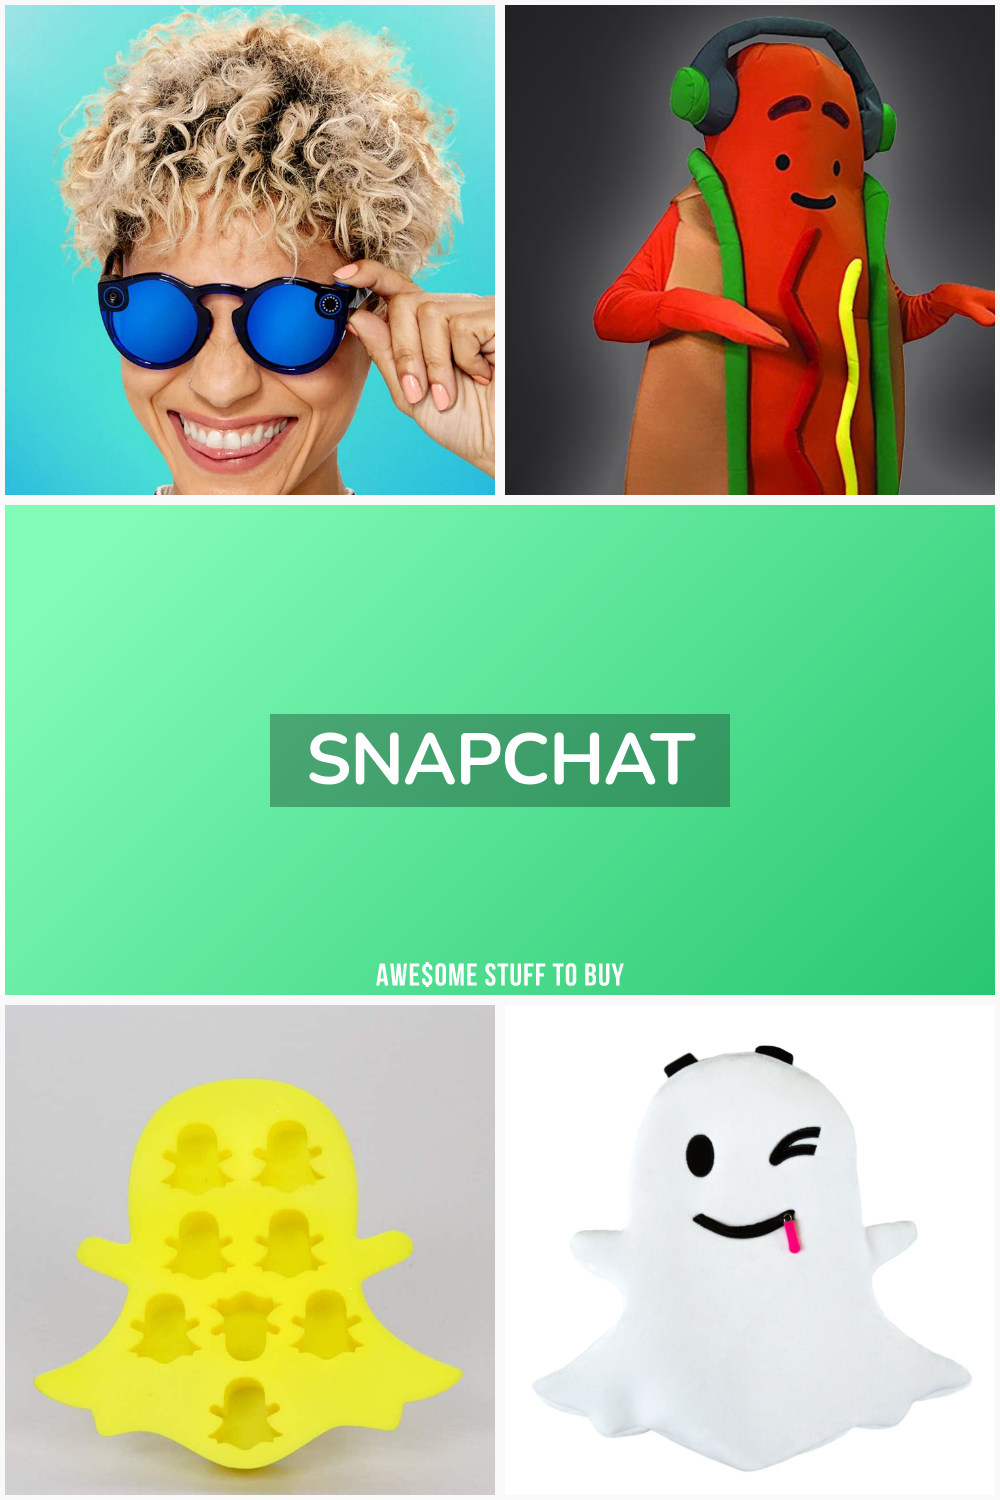 Snapchat // Awesome Stuff to Buy